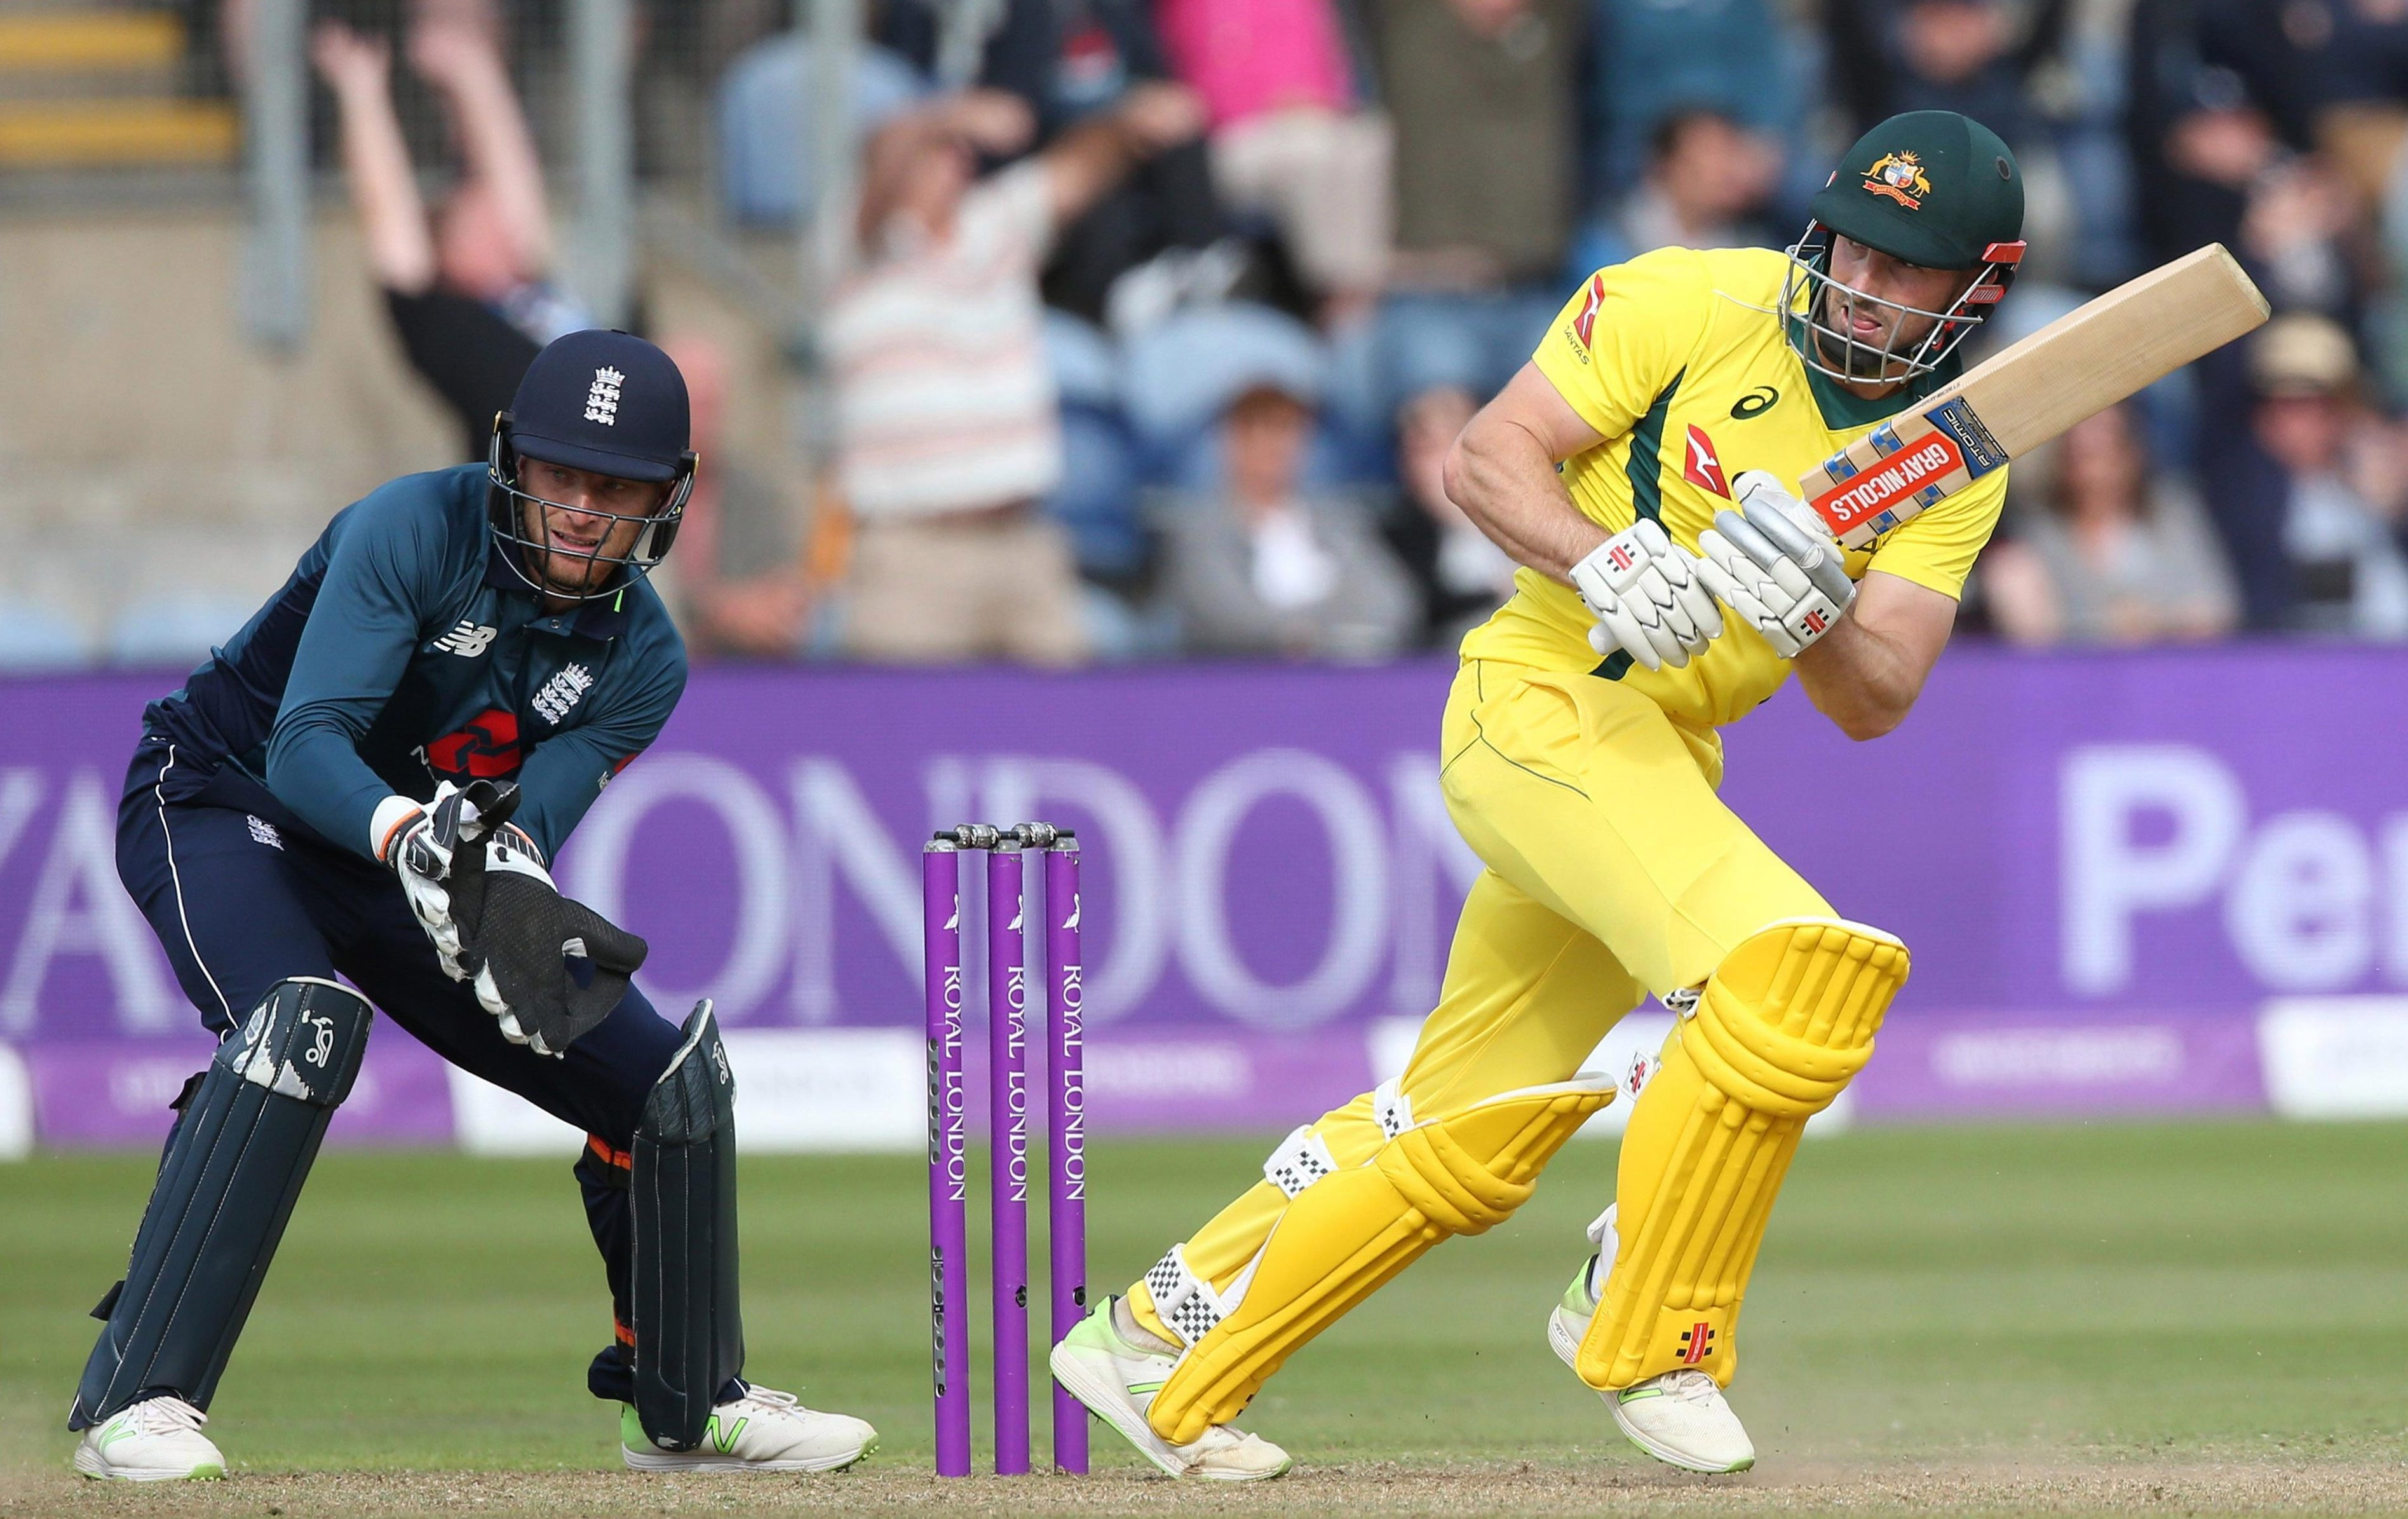 Shaun Marsh provided the only resistance for Australia with his century